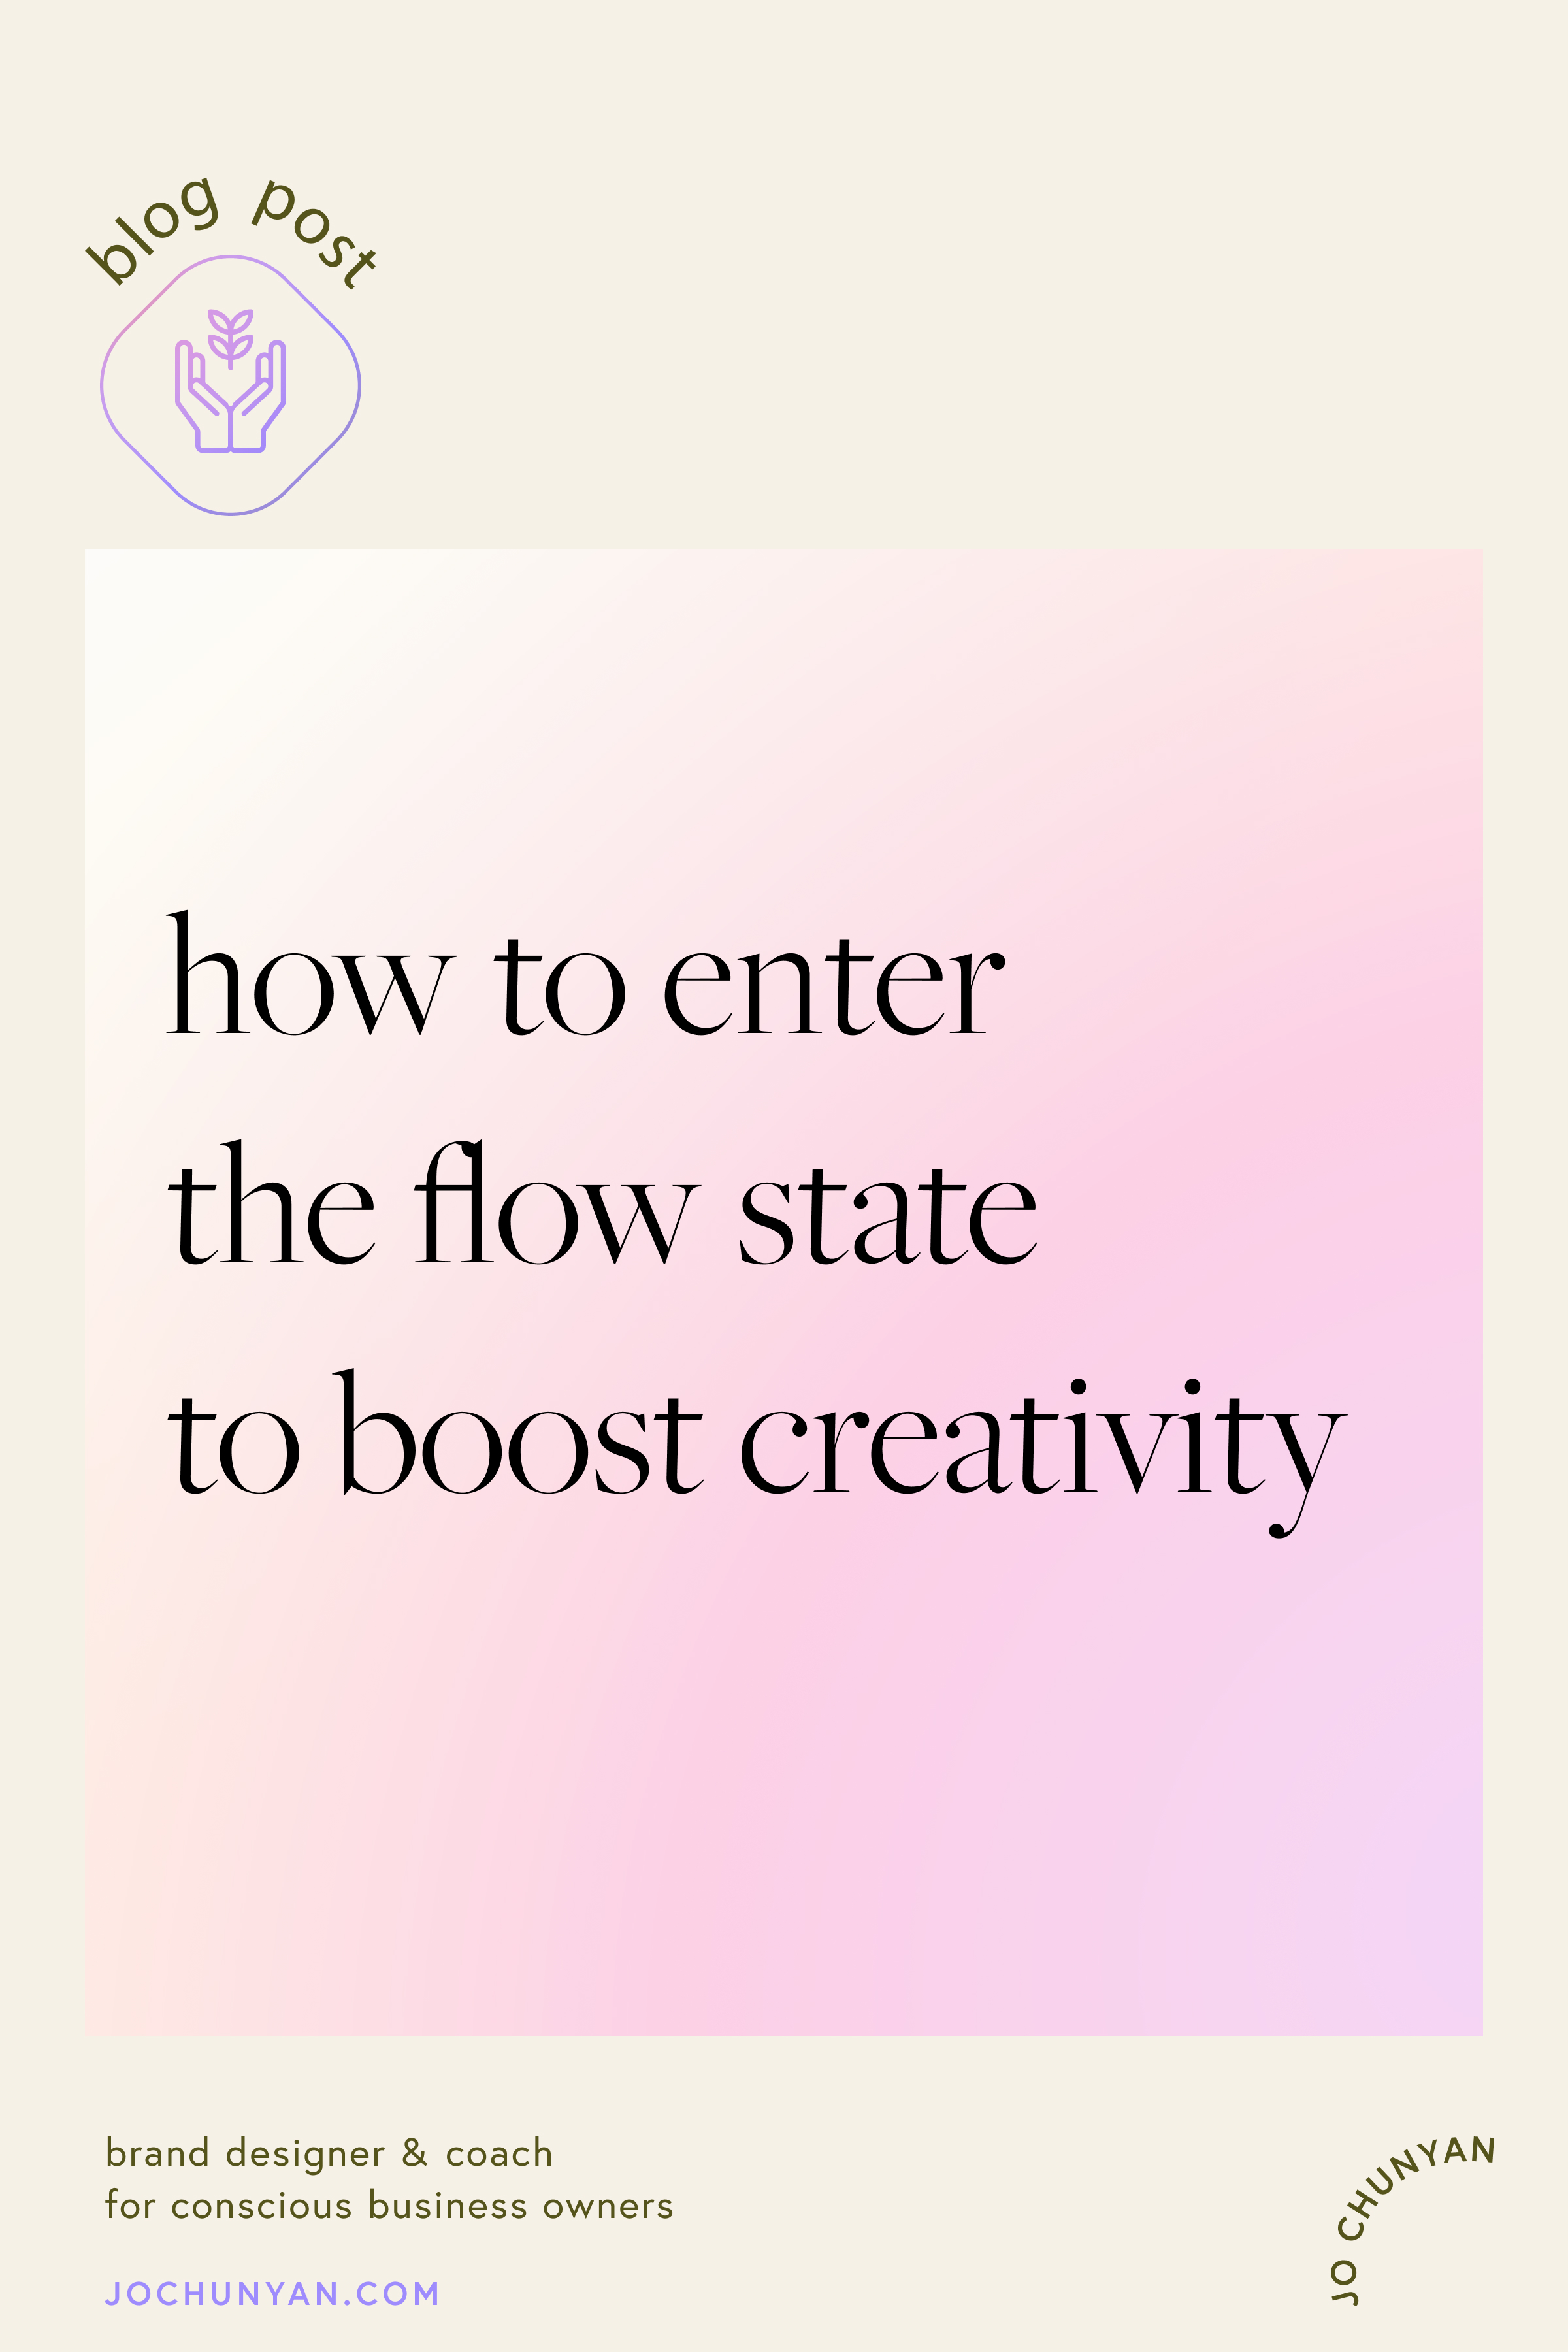 How to enter the flow state to boost creativity